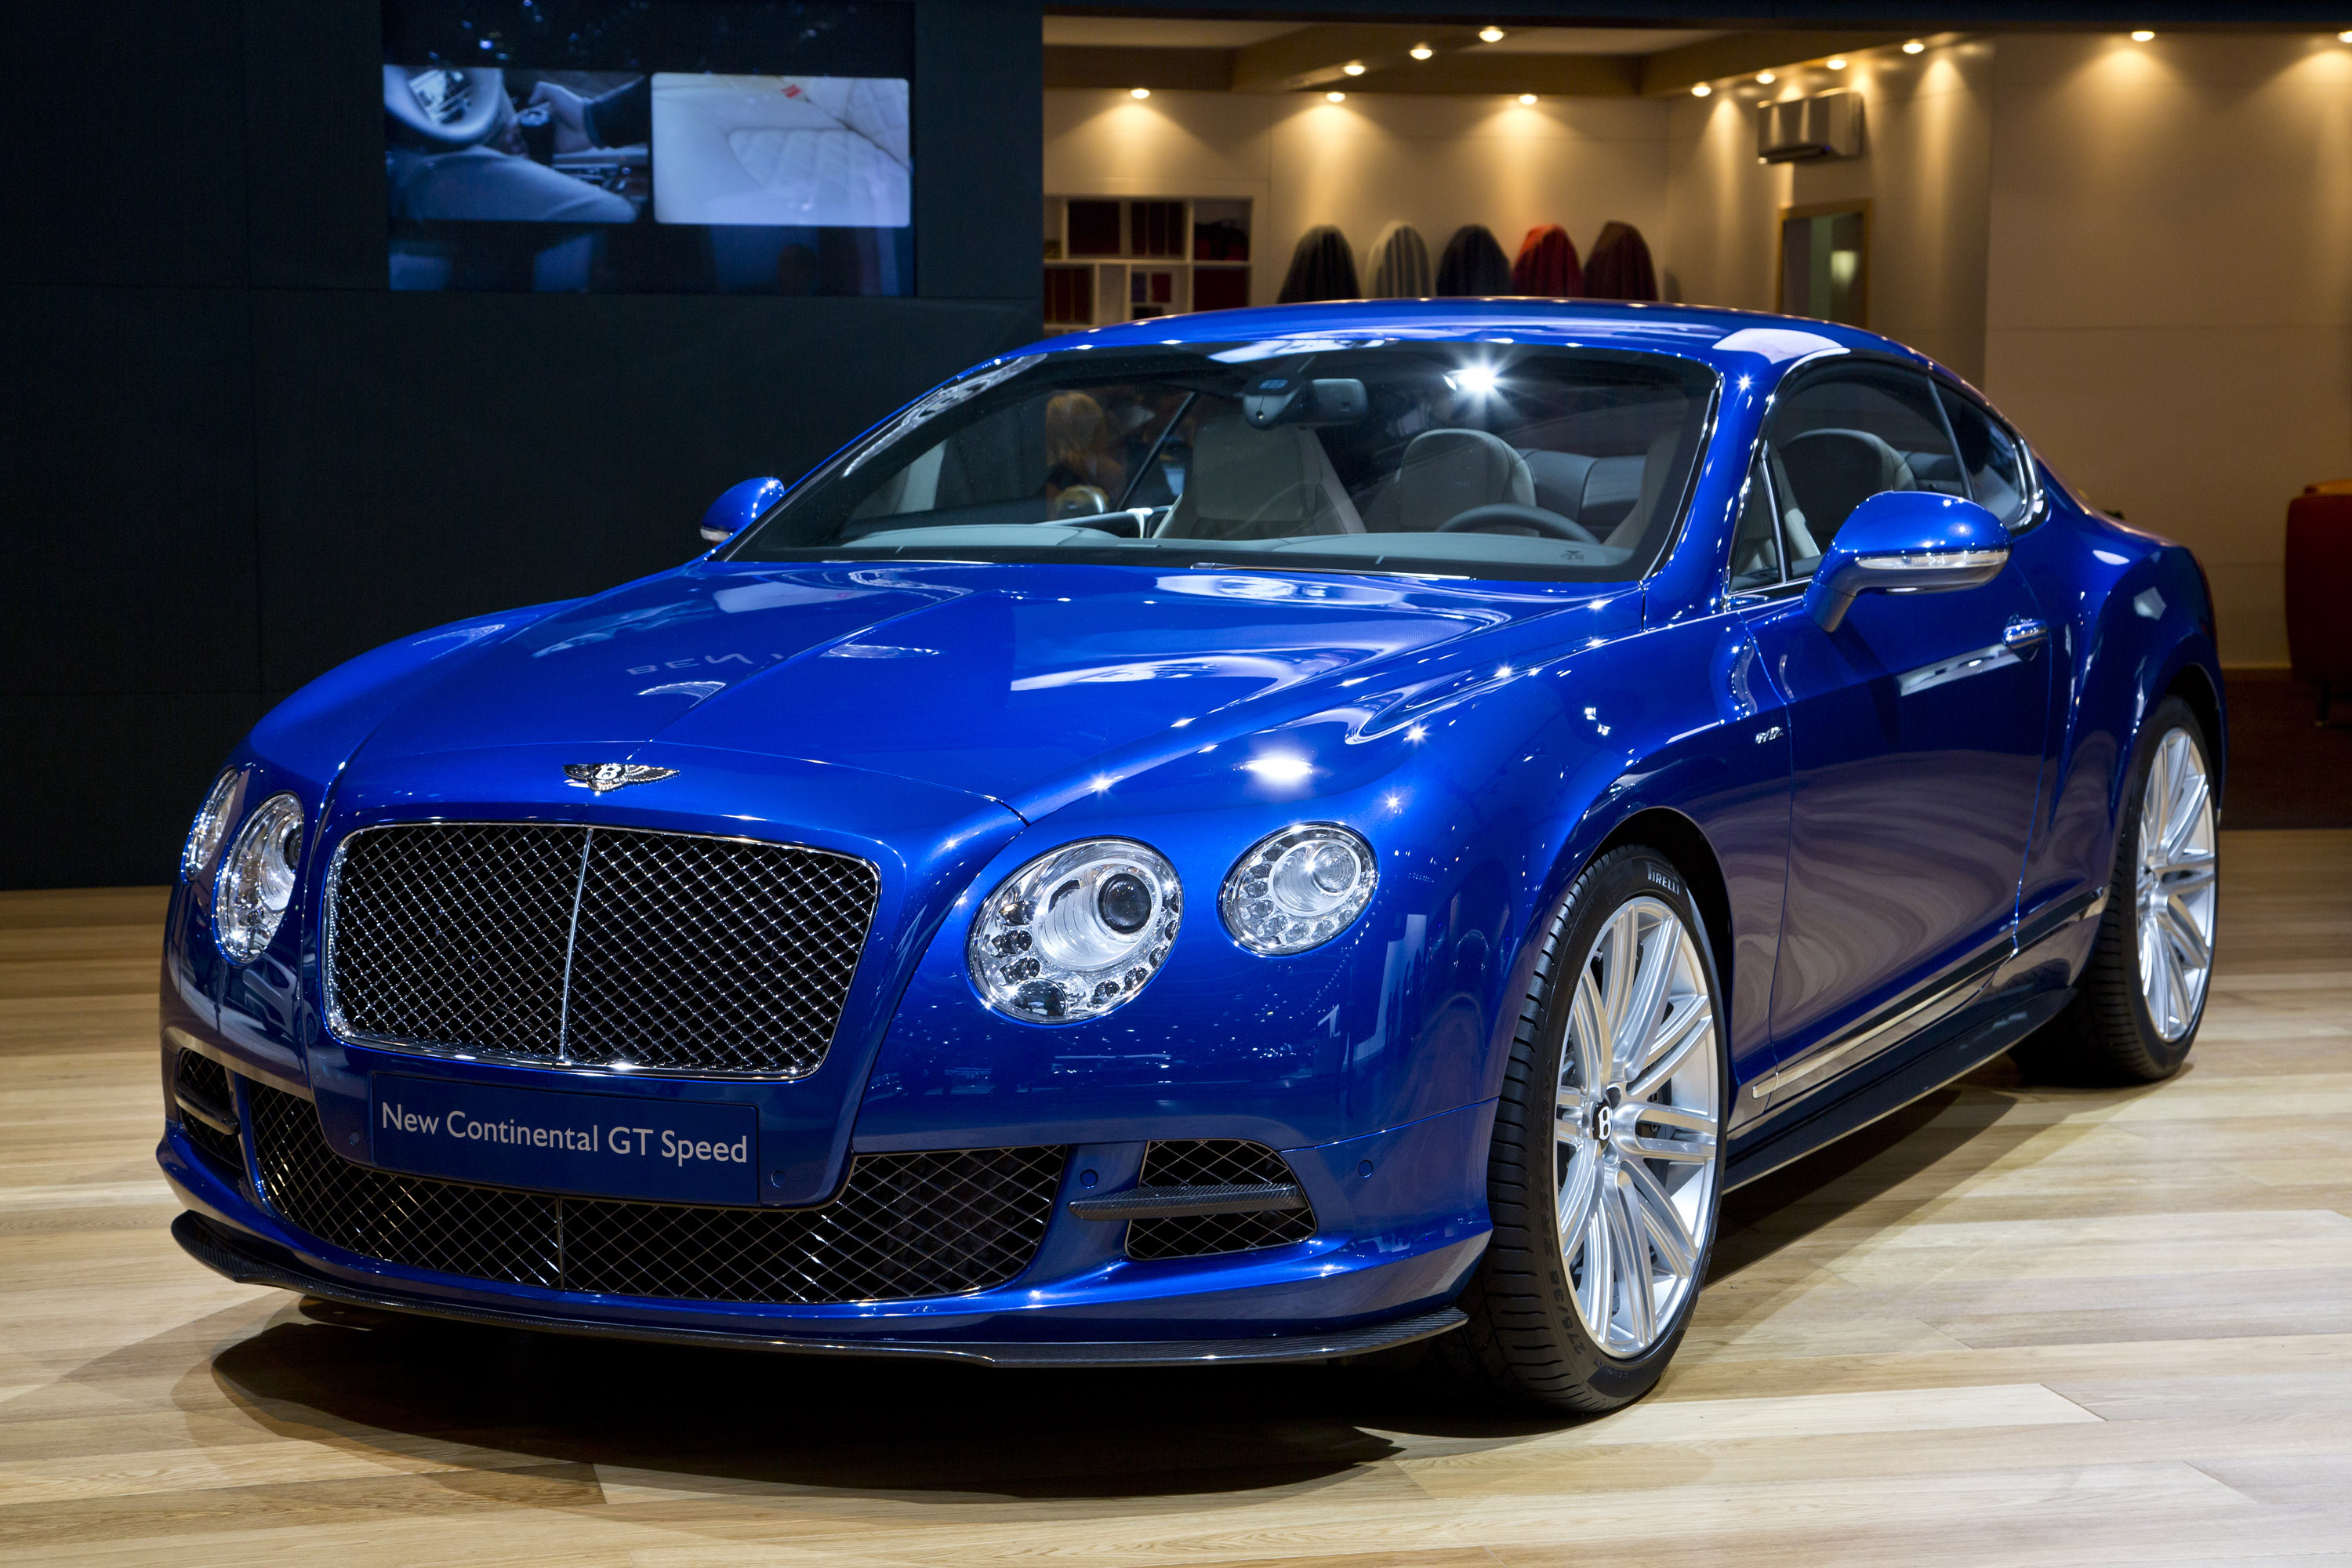 release news trans cost specs the grand pictures brawny cars revealed in continental bentley tourer new prices british of a gt